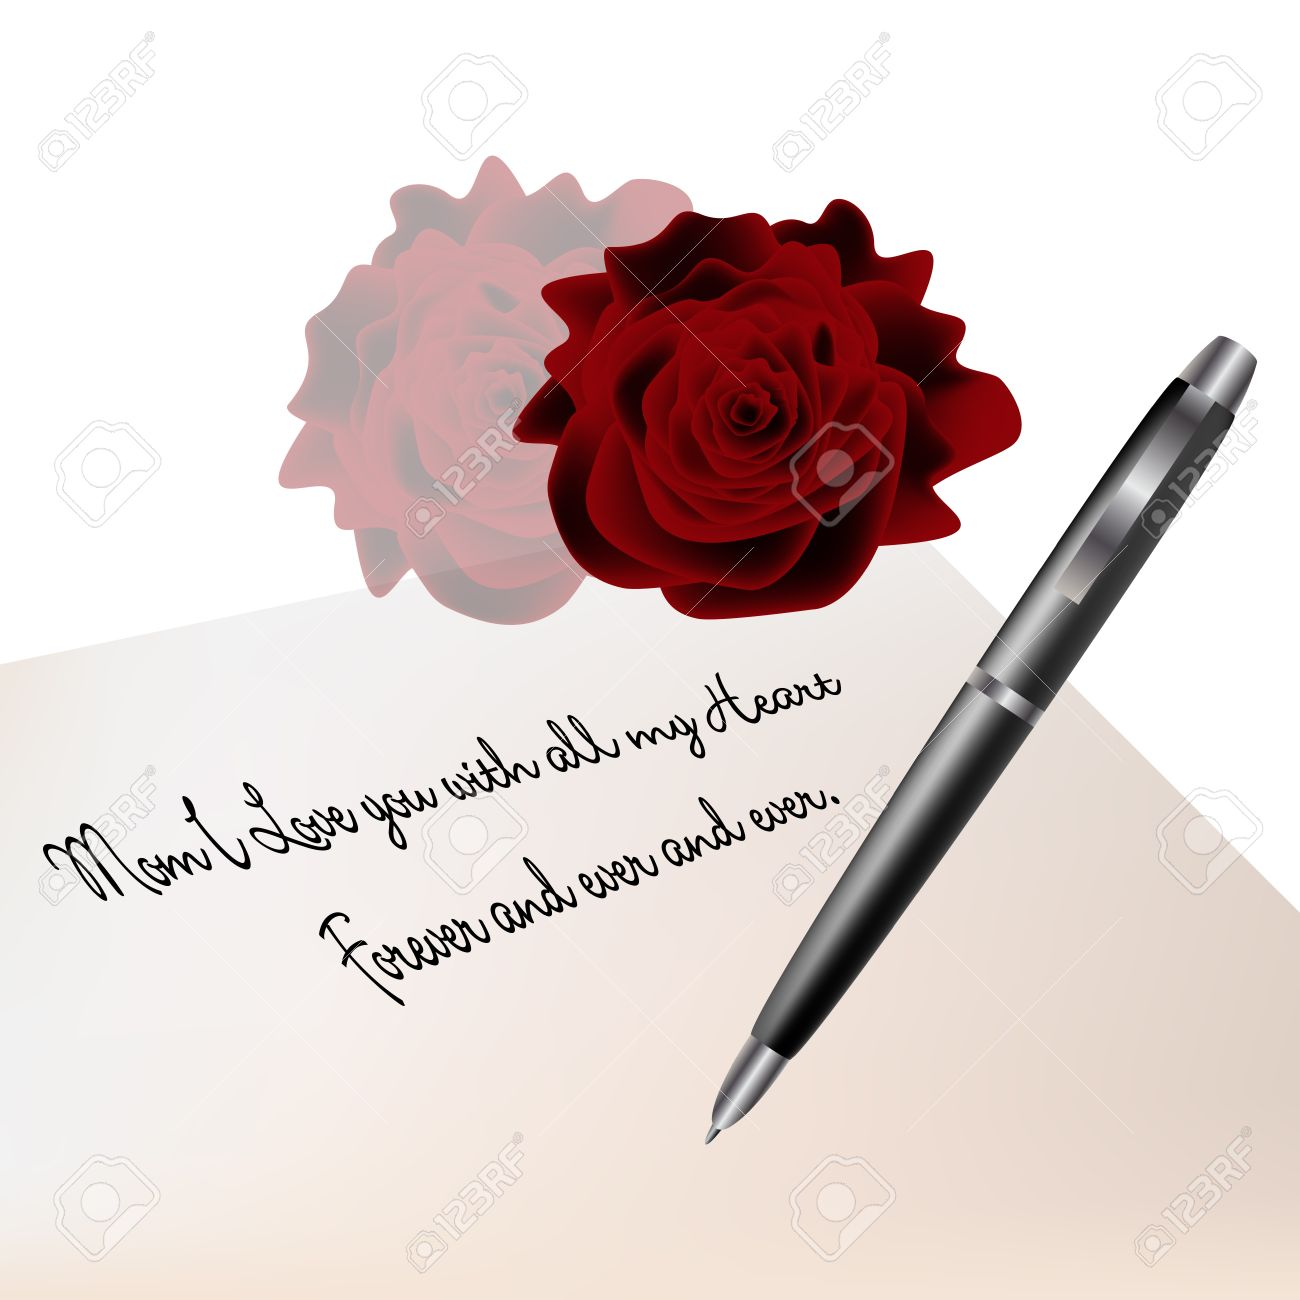 Graphic Illustration Of Romantic Love Letter With Pen And Roses Stock  Vector   14957887